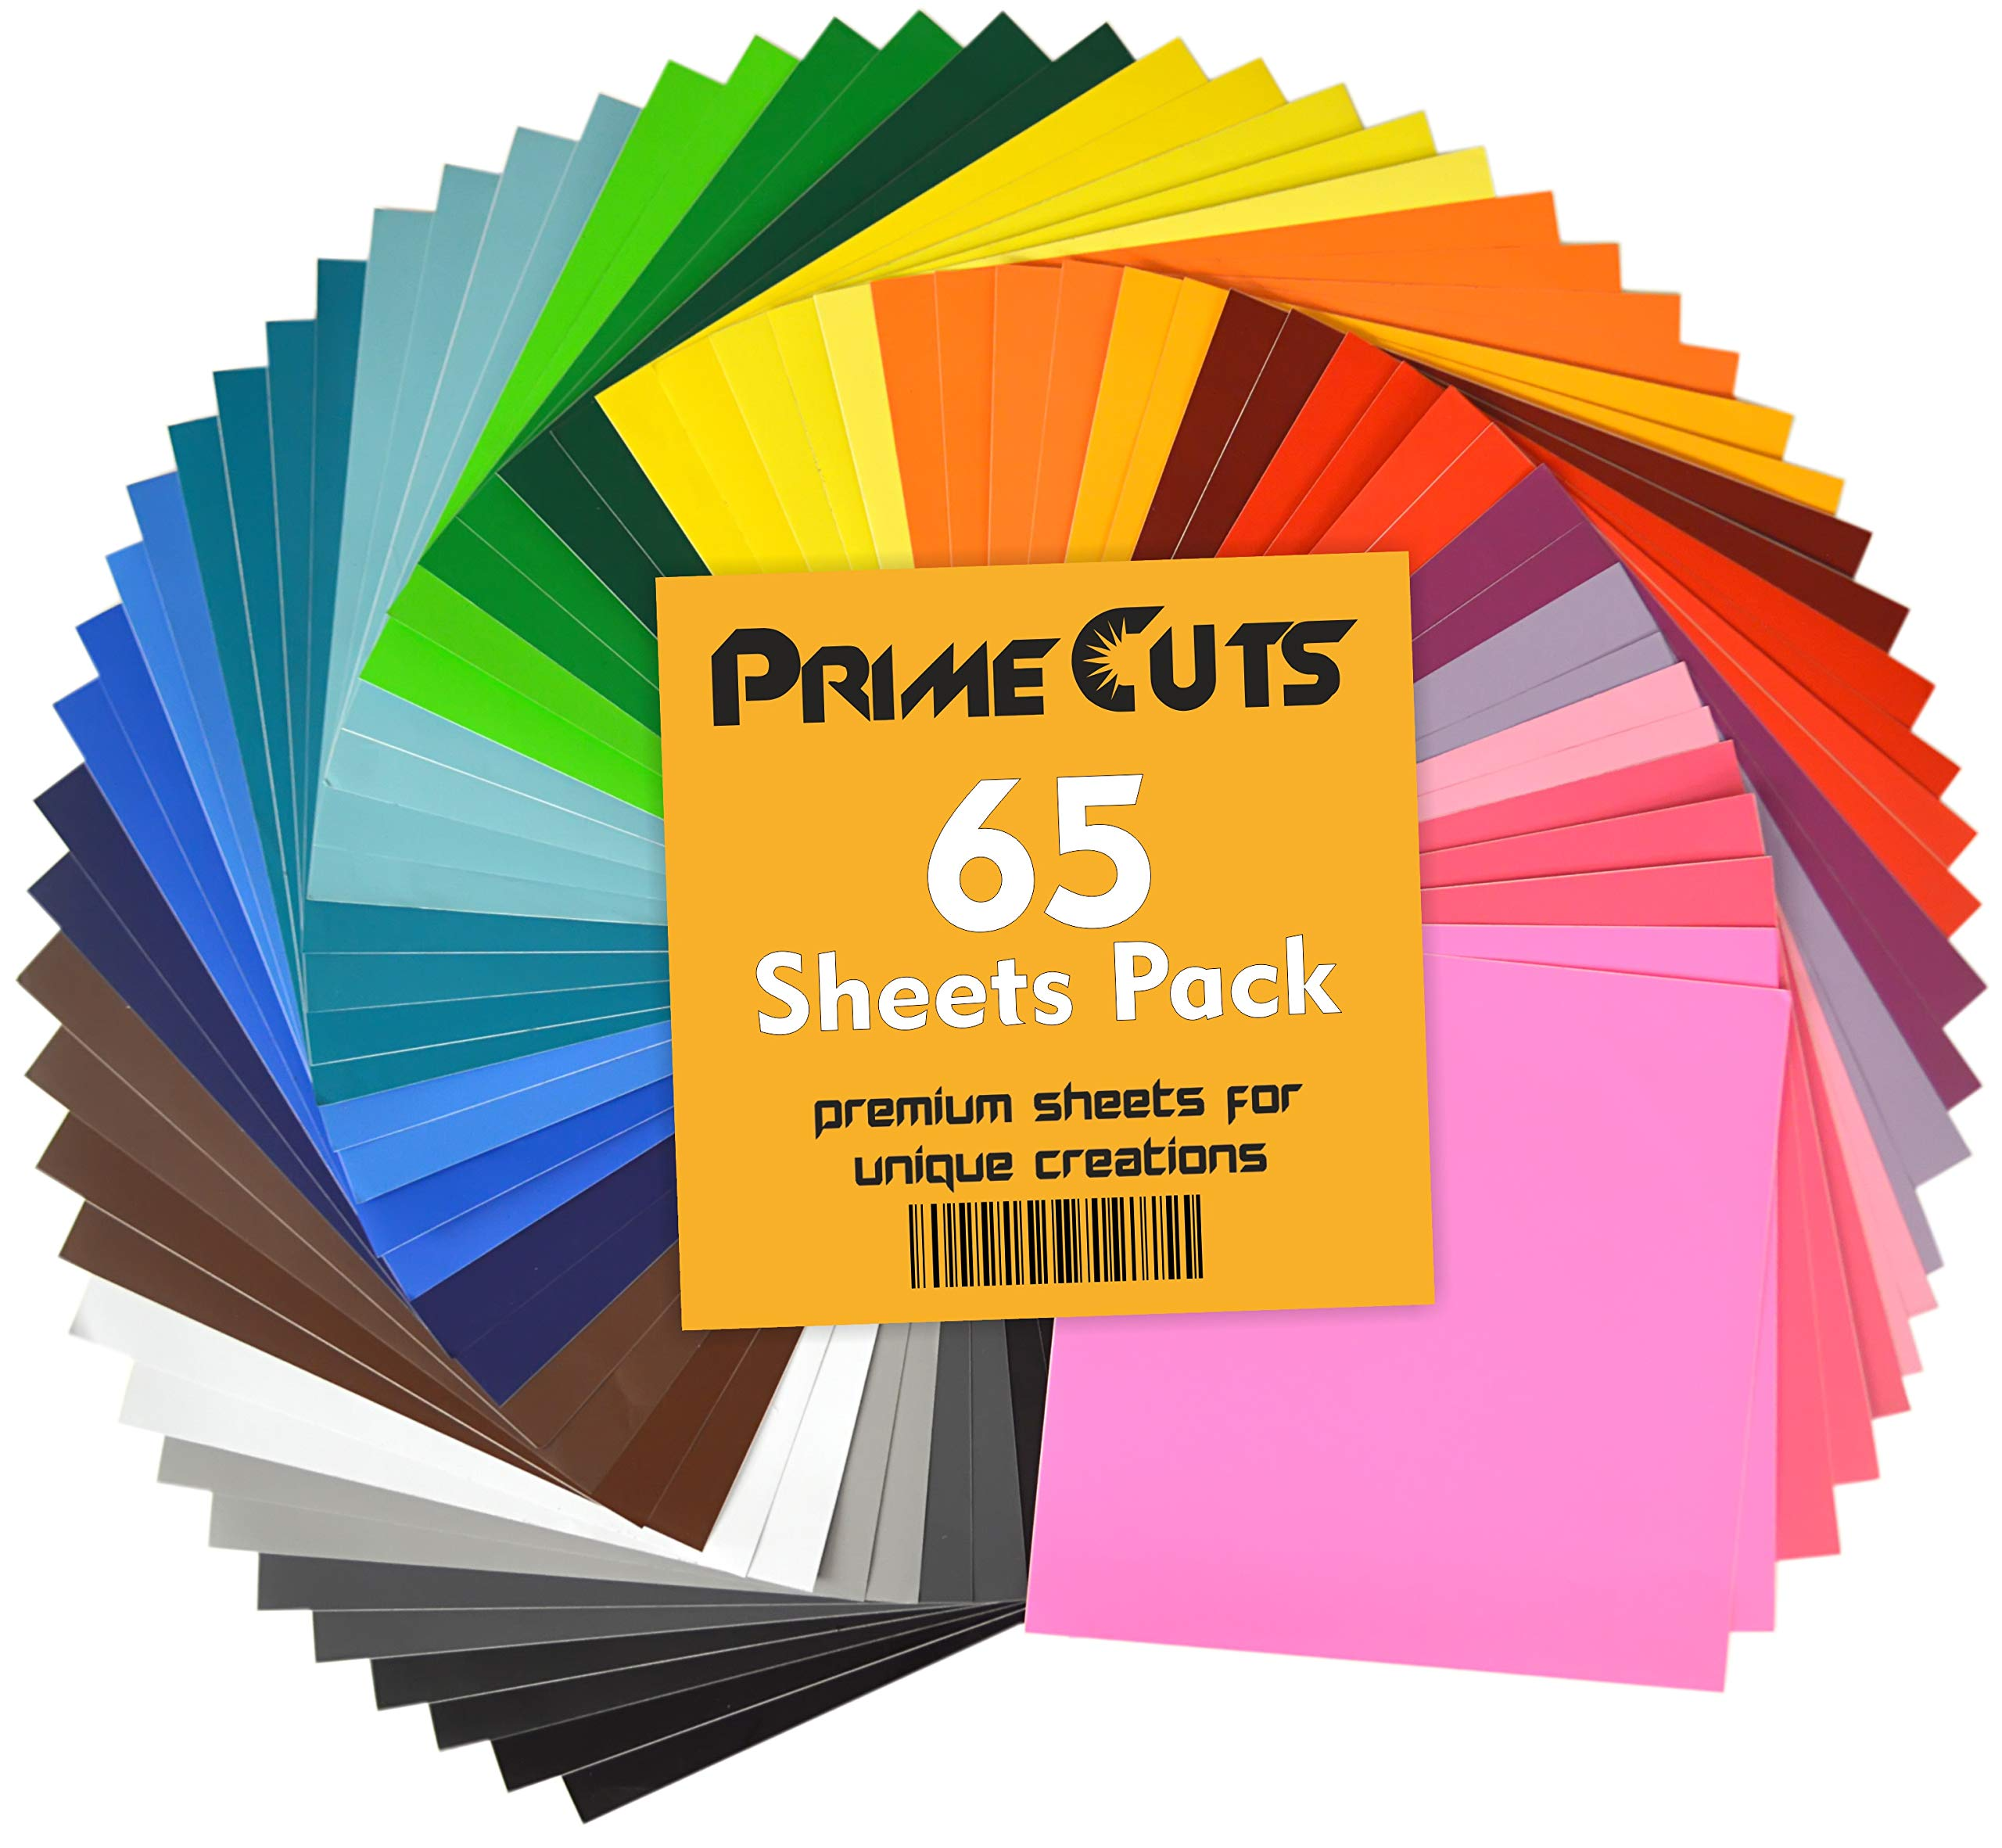 Permanent Adhesive Backed Vinyl Sheets By PrimeCuts USA - 65 VINYL SHEETS 12'' x 12'' - 65 Assorted Color Sheets for Cricut, Silhouette Cameo, and Other Craft Cutters